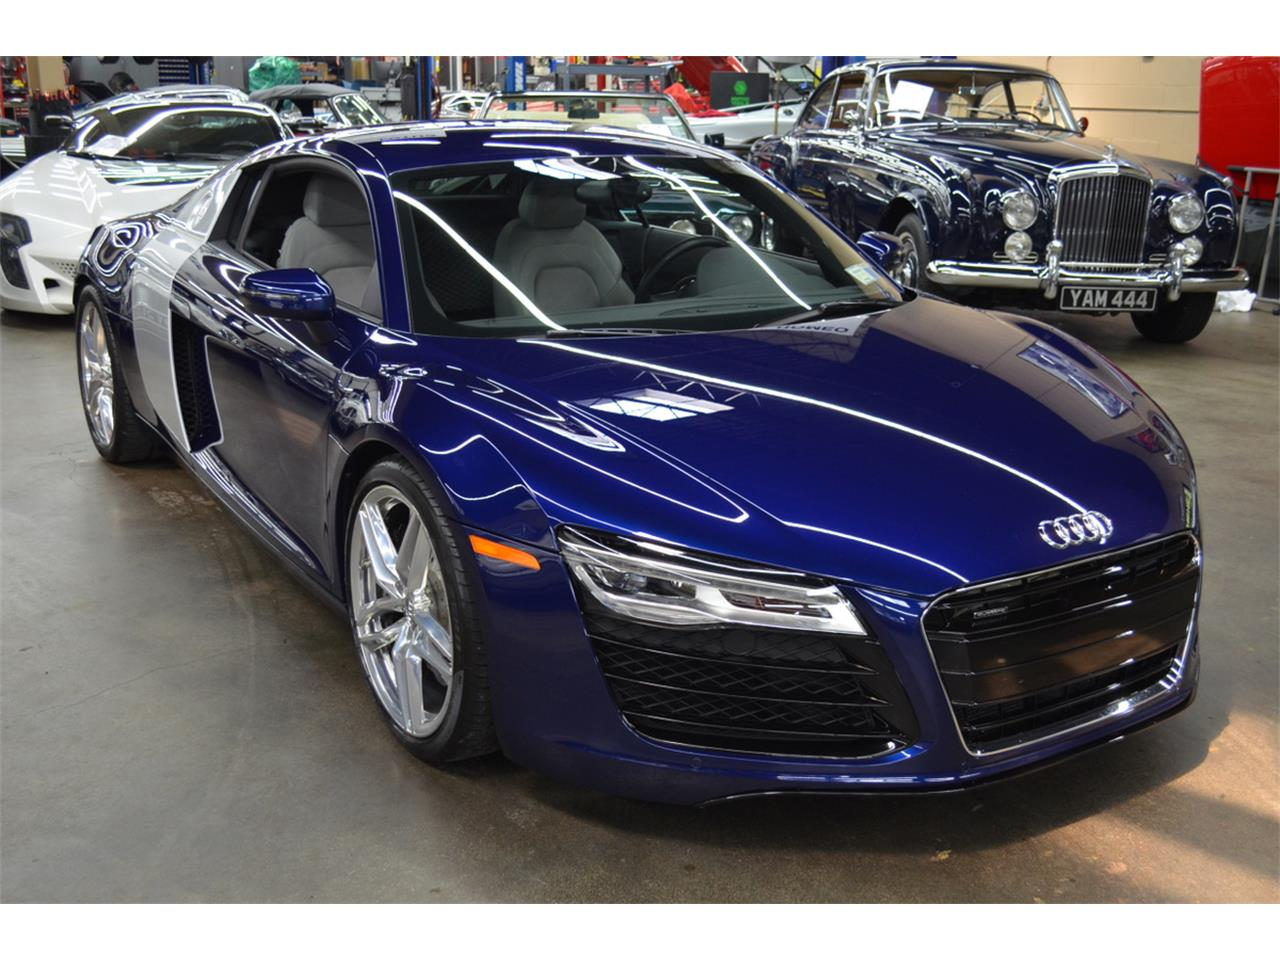 2014 Audi R8 (CC-1367631) for sale in Huntington Station, New York